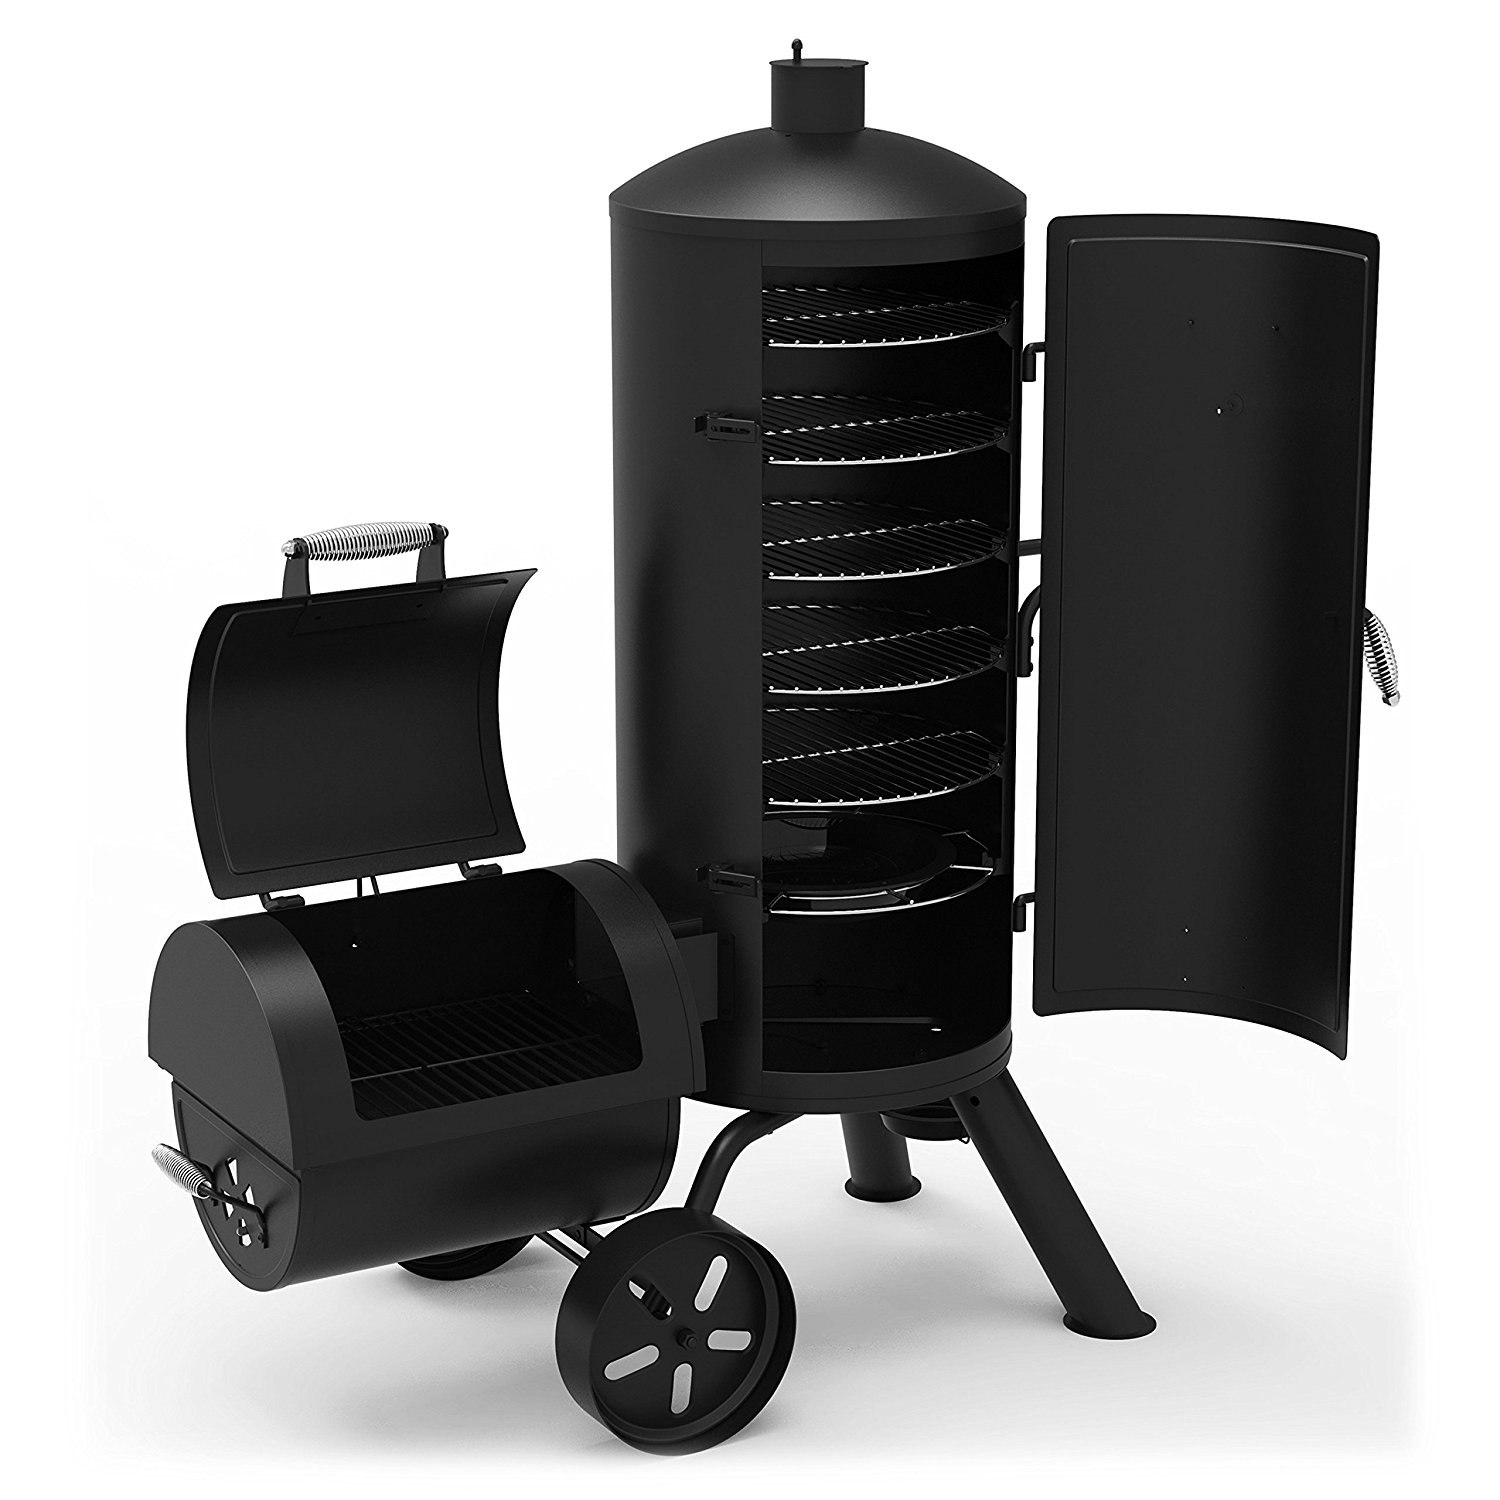 Dyna Glo Signature Series DGSS1382VCS D Heavy Duty  : Dyna Glo Signature Series DGSS1382VCS D Heavy Duty Vertical Offset Charcoal Smoker Grill from icanhasgif.com size 1500 x 1500 jpeg 173kB